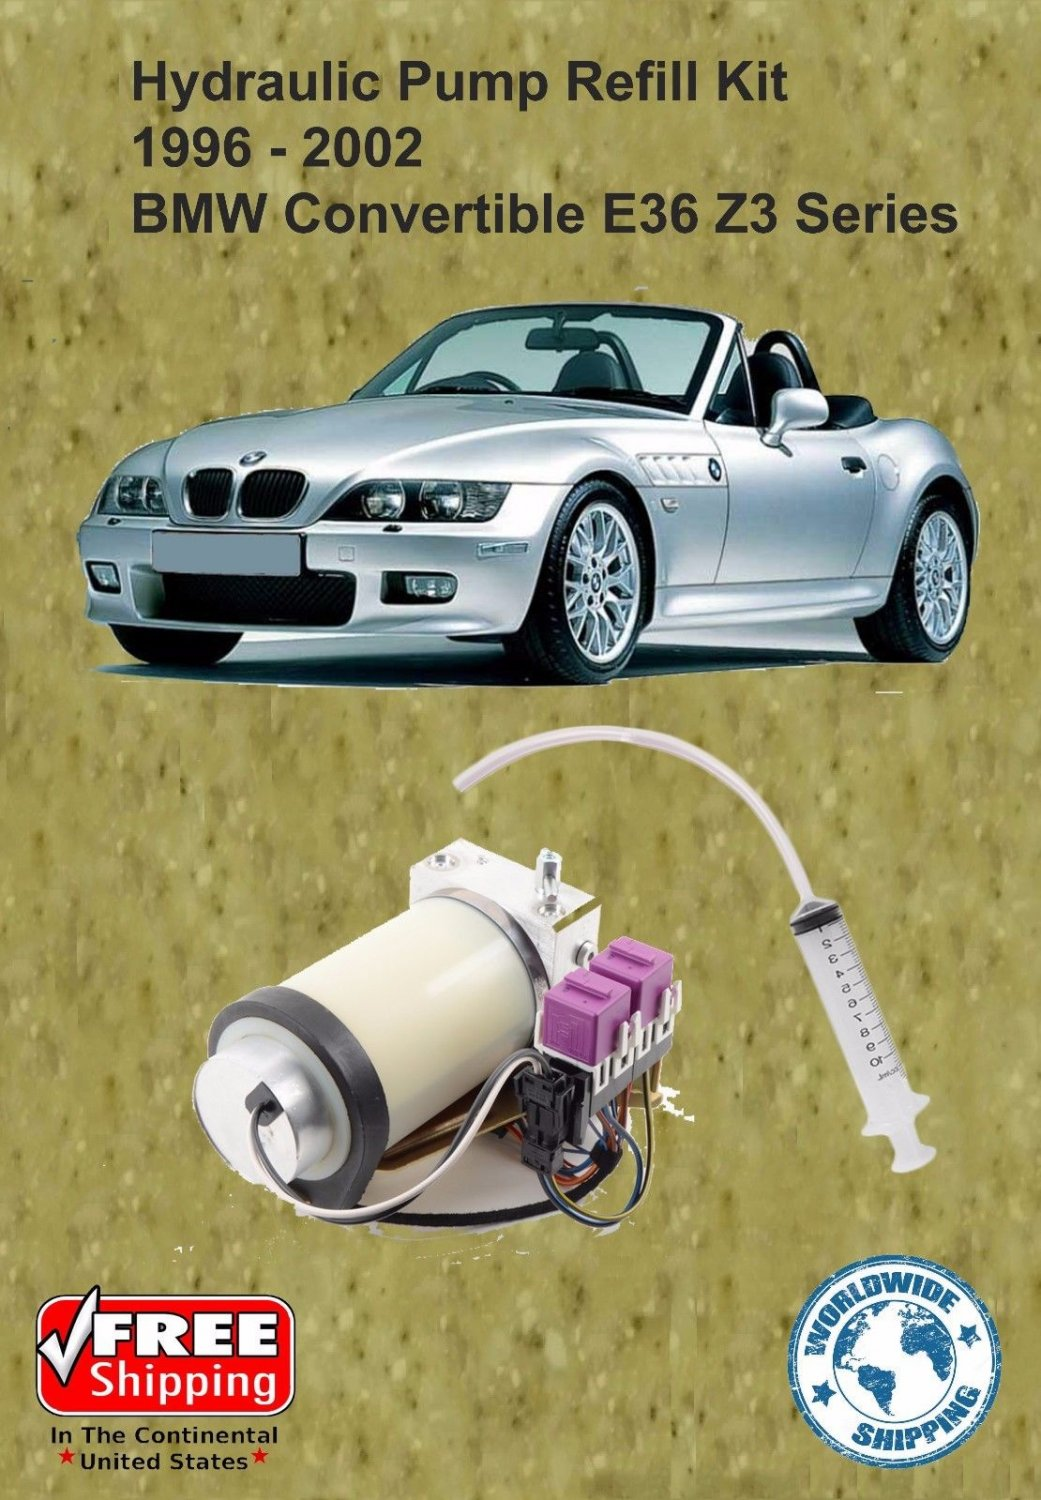 96 02 Bmw Z3 Series Hydraulic Pump Refill Kit Convertible